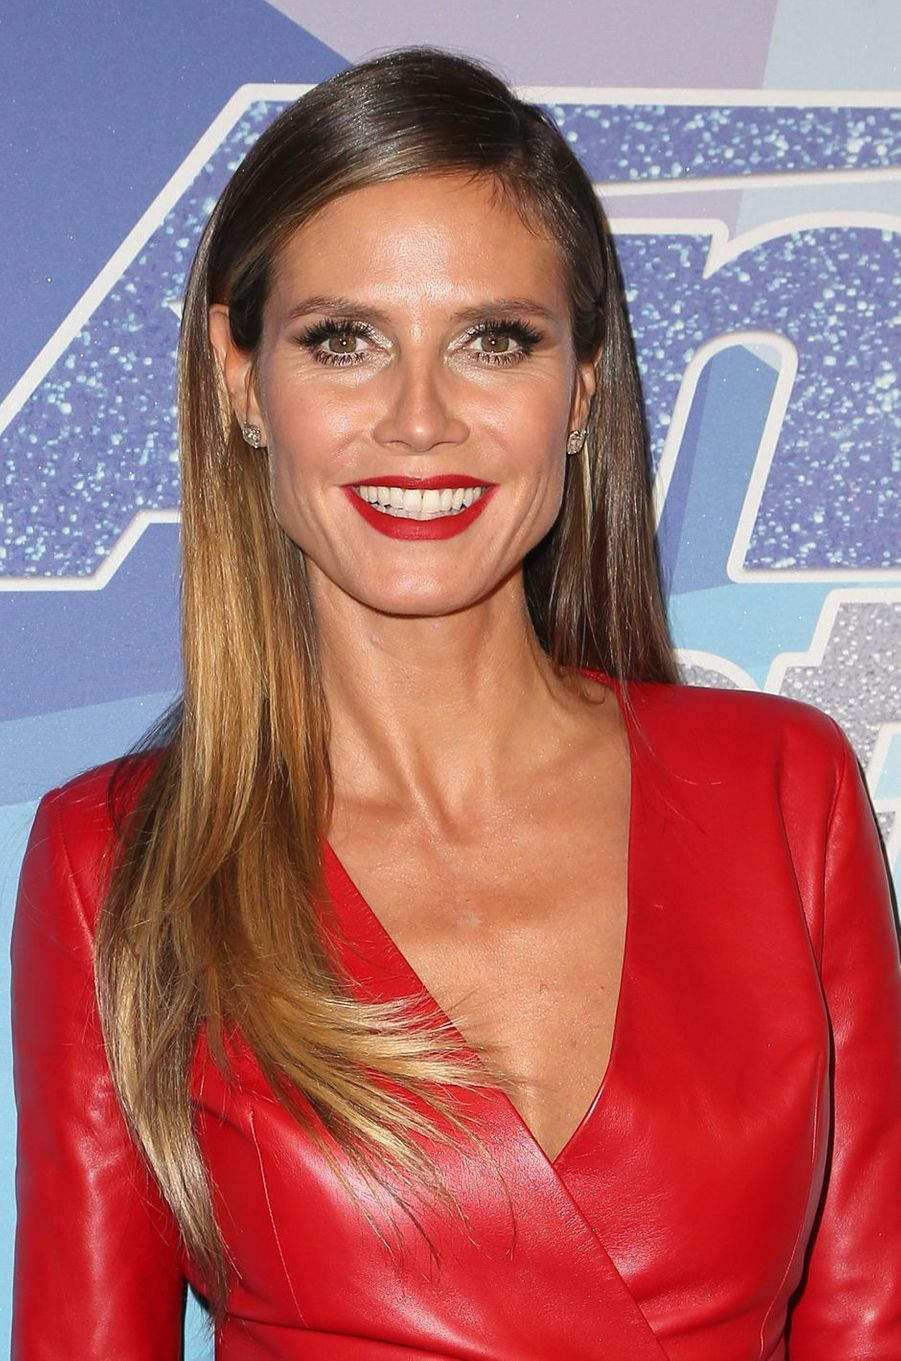 Heidi Klum, le 19 septembre 2017 à Los Angeles.